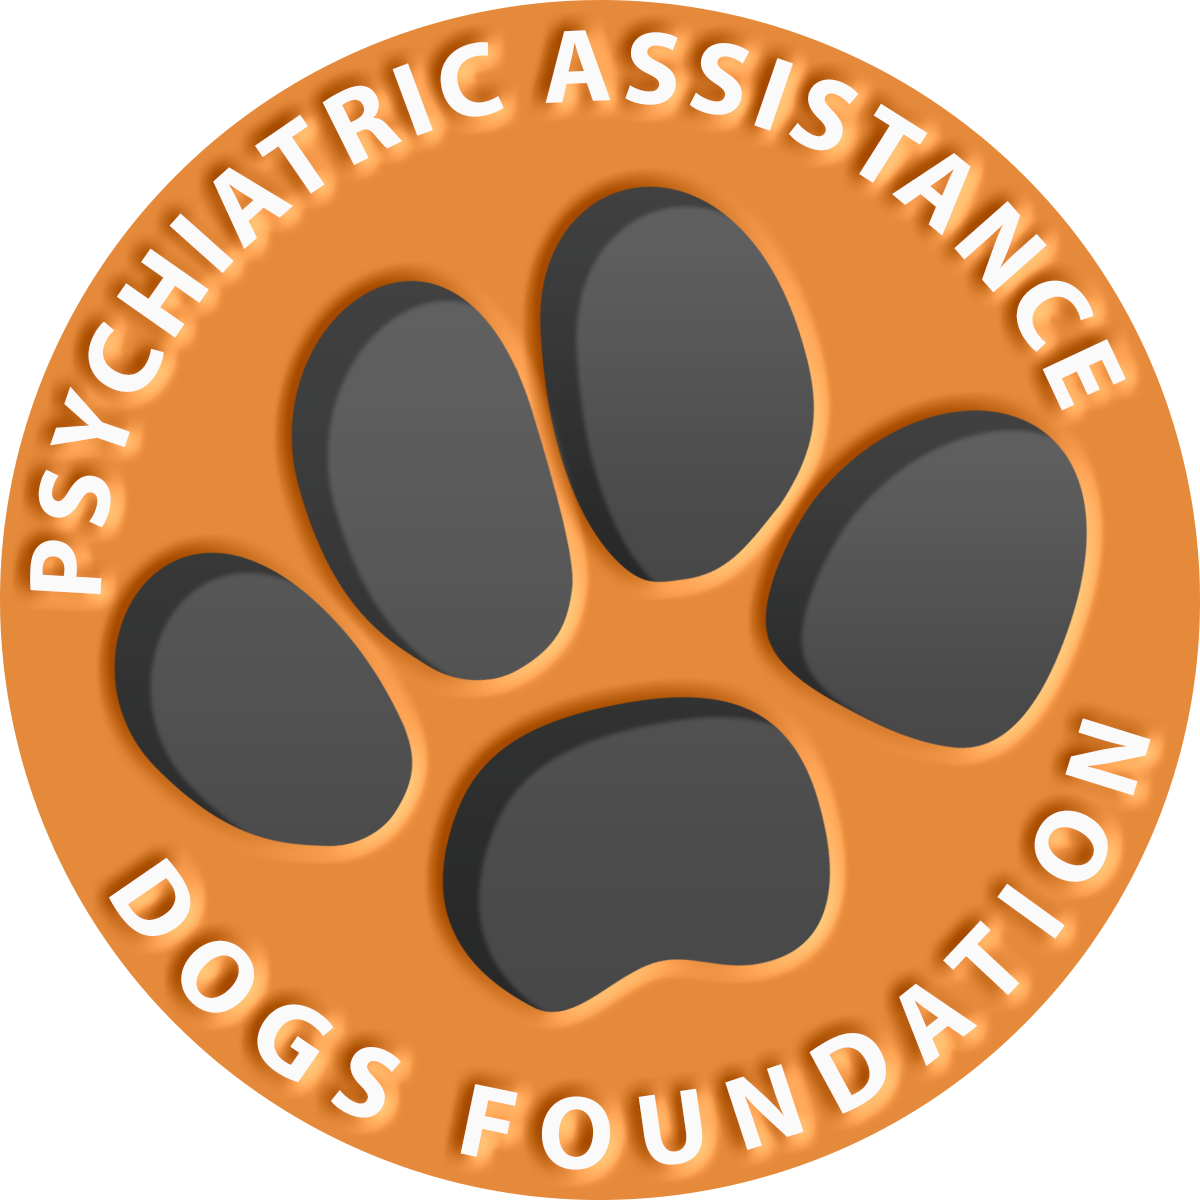 Icon png dogs house paws sleep bones fun logo. Psychiatric assistance foundation